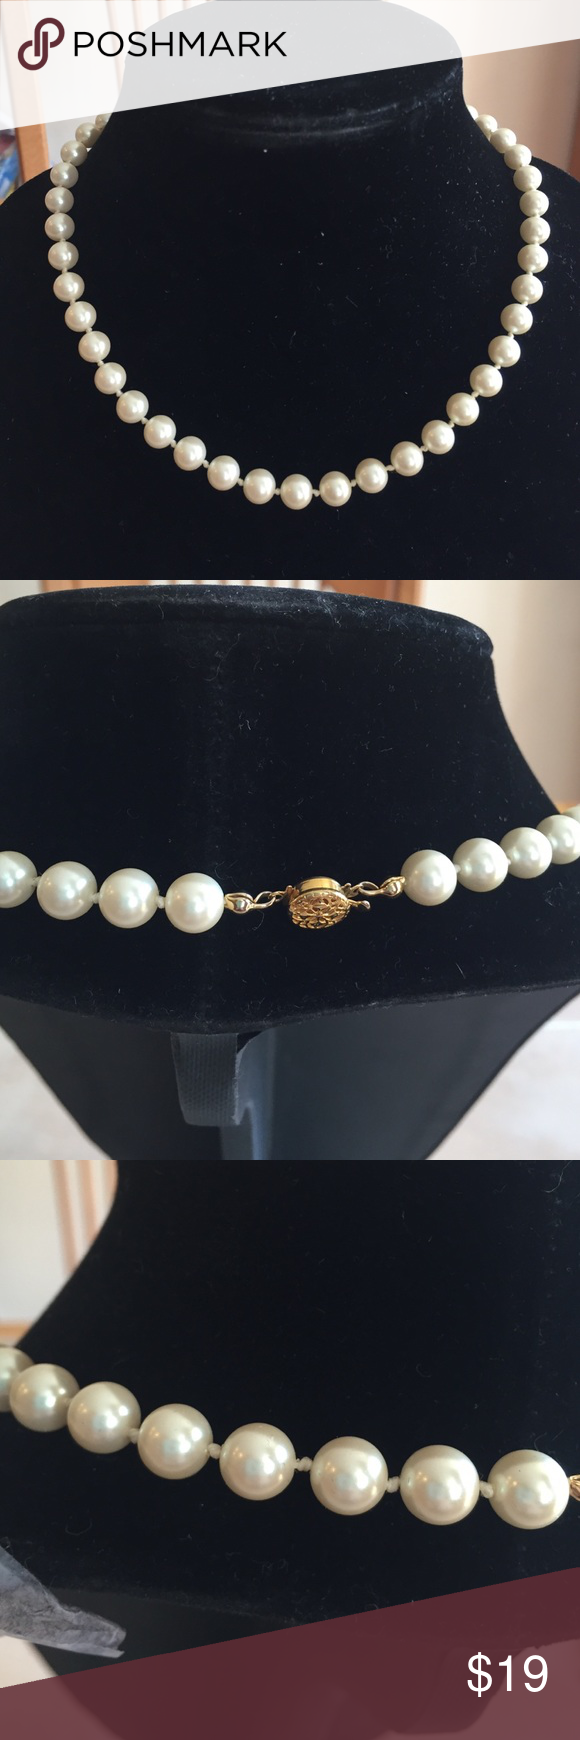 Pearl Necklace 18 Inch